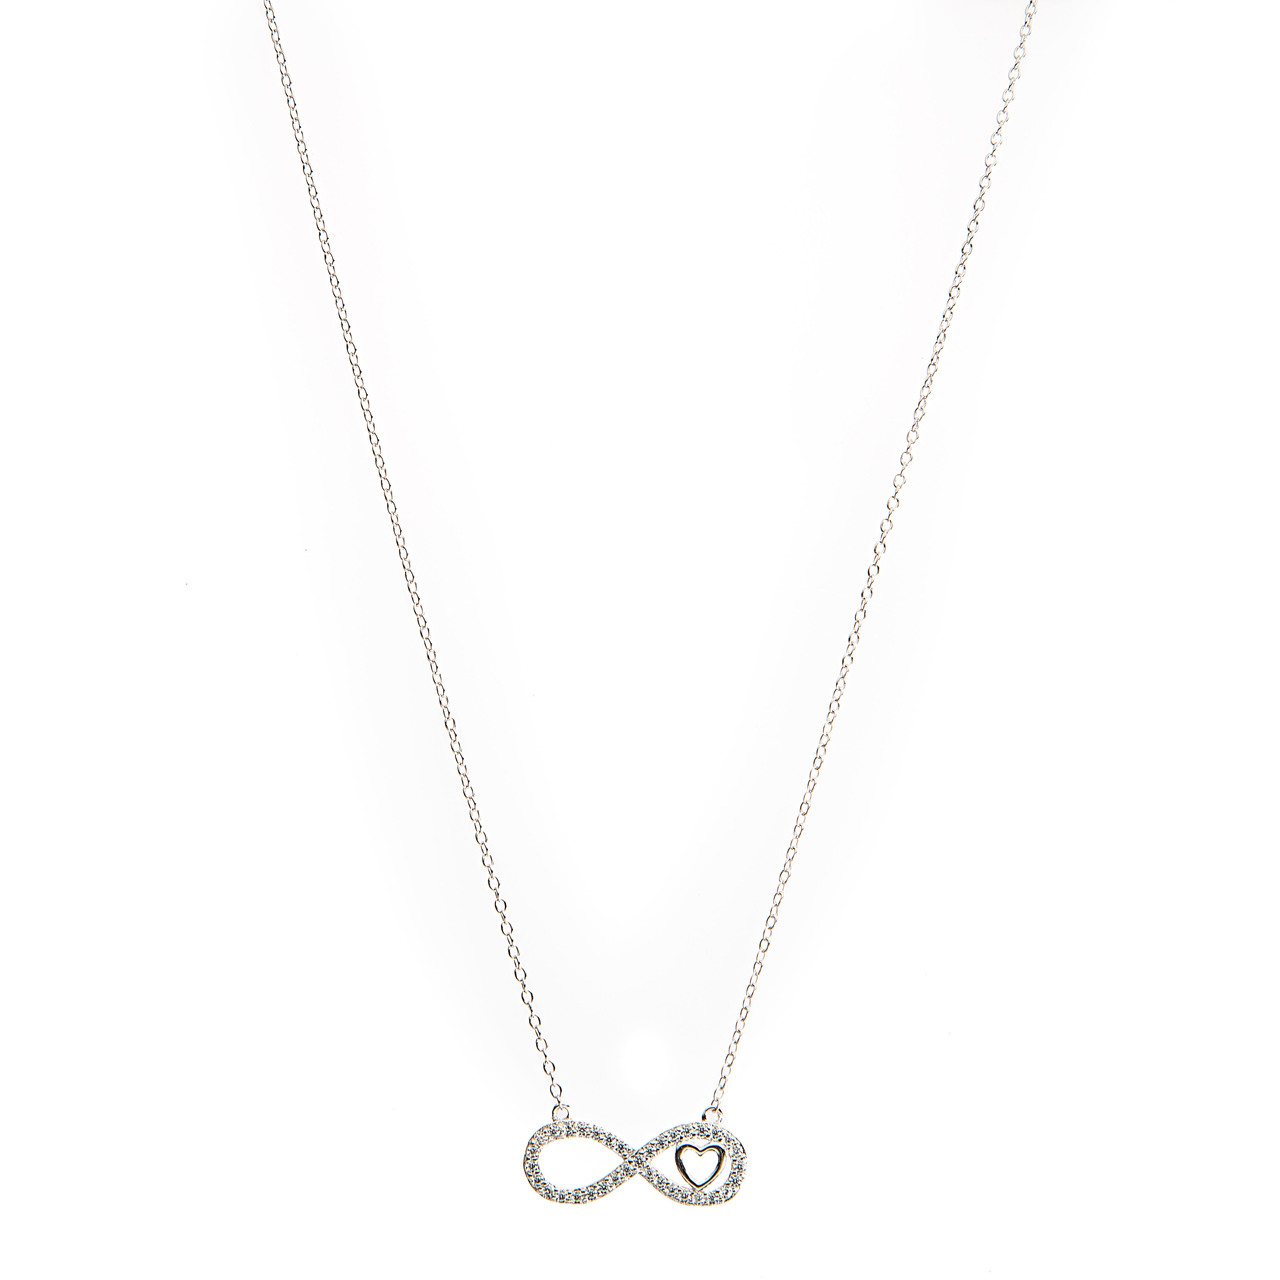 steven pendant infinity products vertical smallinfinitypendant small smallverticalinfinitypendant kretchmer